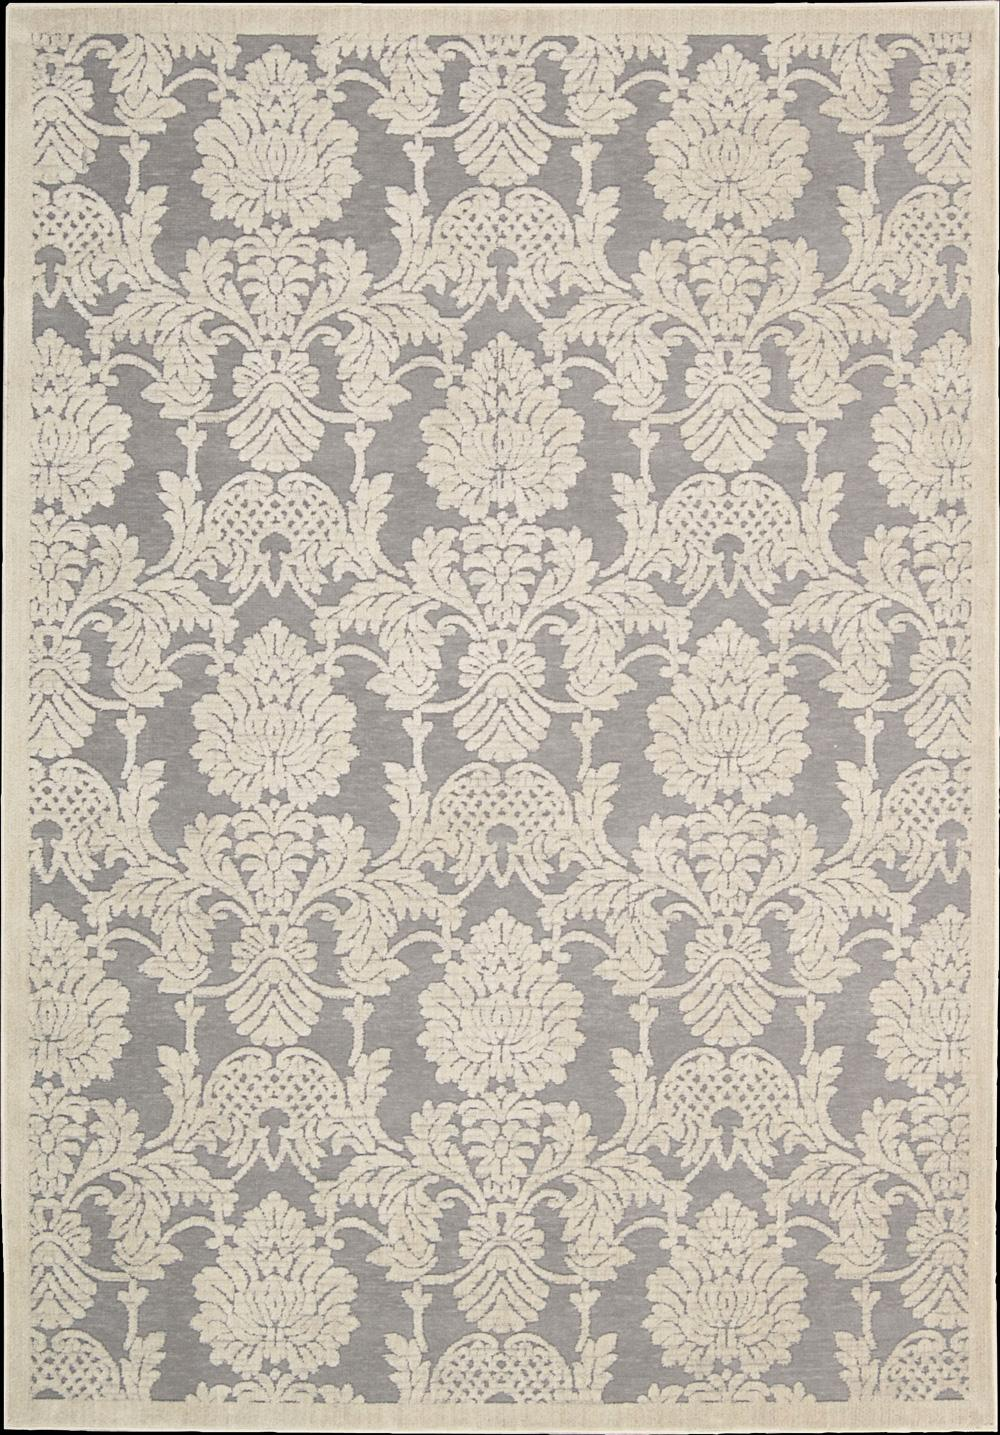 "Nourison Graphic Illusions Area Rug 3'6"" x 5'6"" - Item Number: 11791"